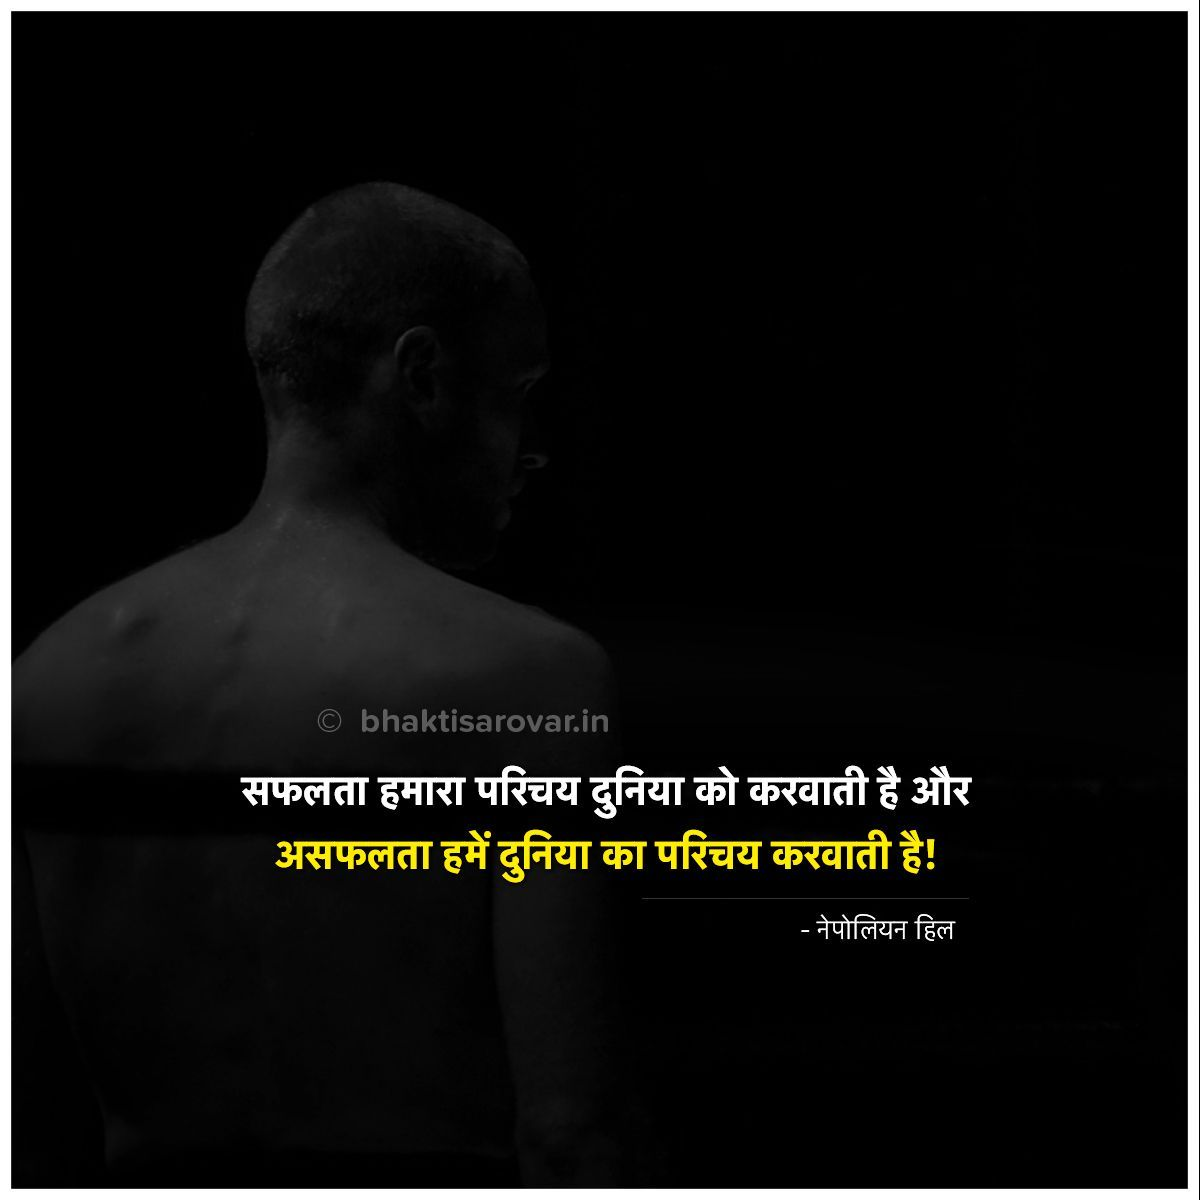 Positive Quotes Motivationhindi A Dream Doesn T Become Reality Through Magic It Tak Inspirational Quotes With Images Hindi Quotes Thinking Quotes